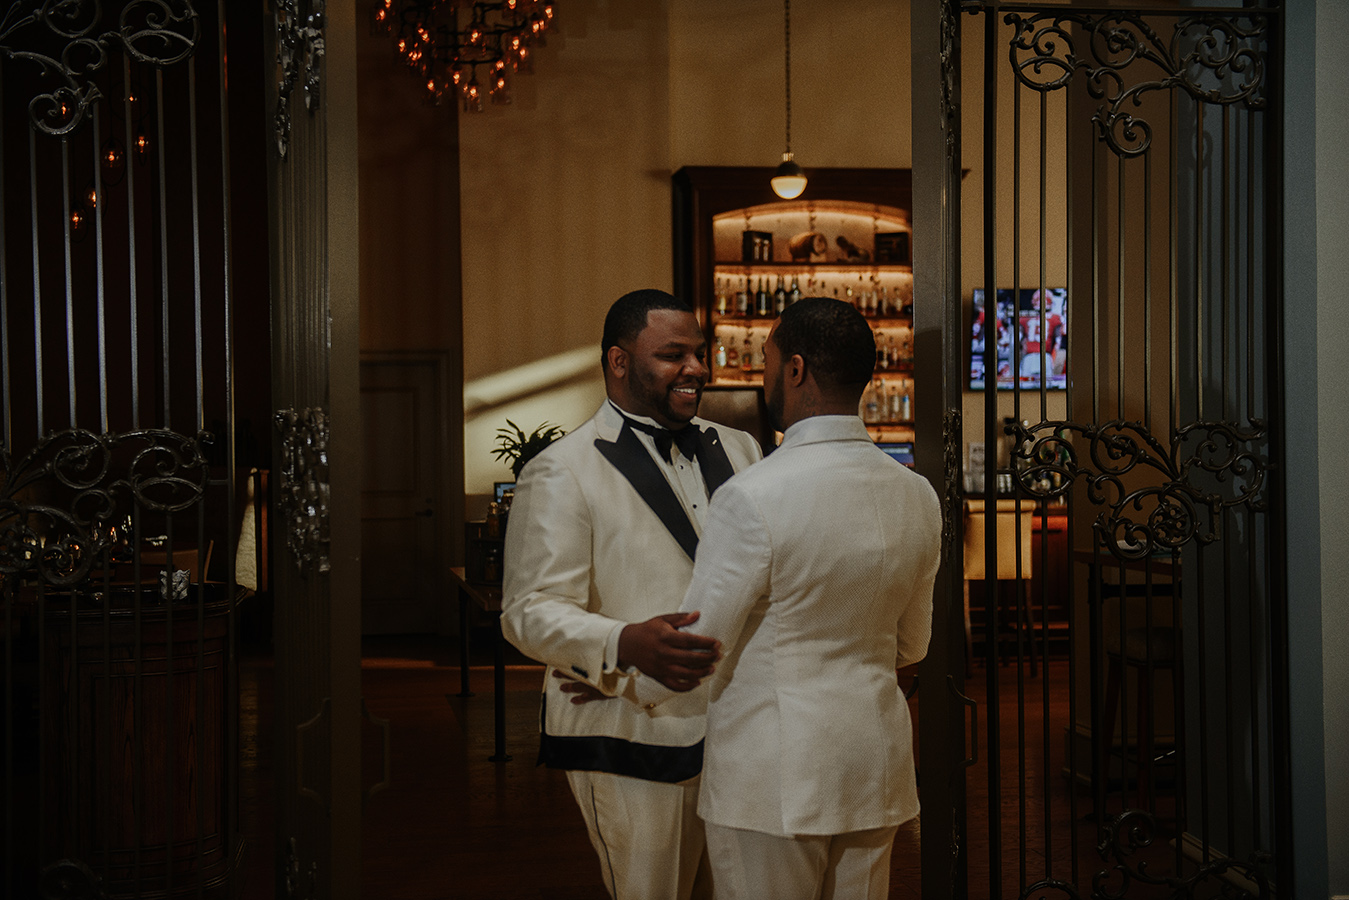 """Our first look was a mix of emotions - being nervous, the anticipation of what each other's suits looked like, and trying not to do the ugly cry,"" shares Ay'Jae. ""But when we saw each other we were like 'umm you clean up very well' with a huge smile on both our faces and we couldn't stop hugging."""